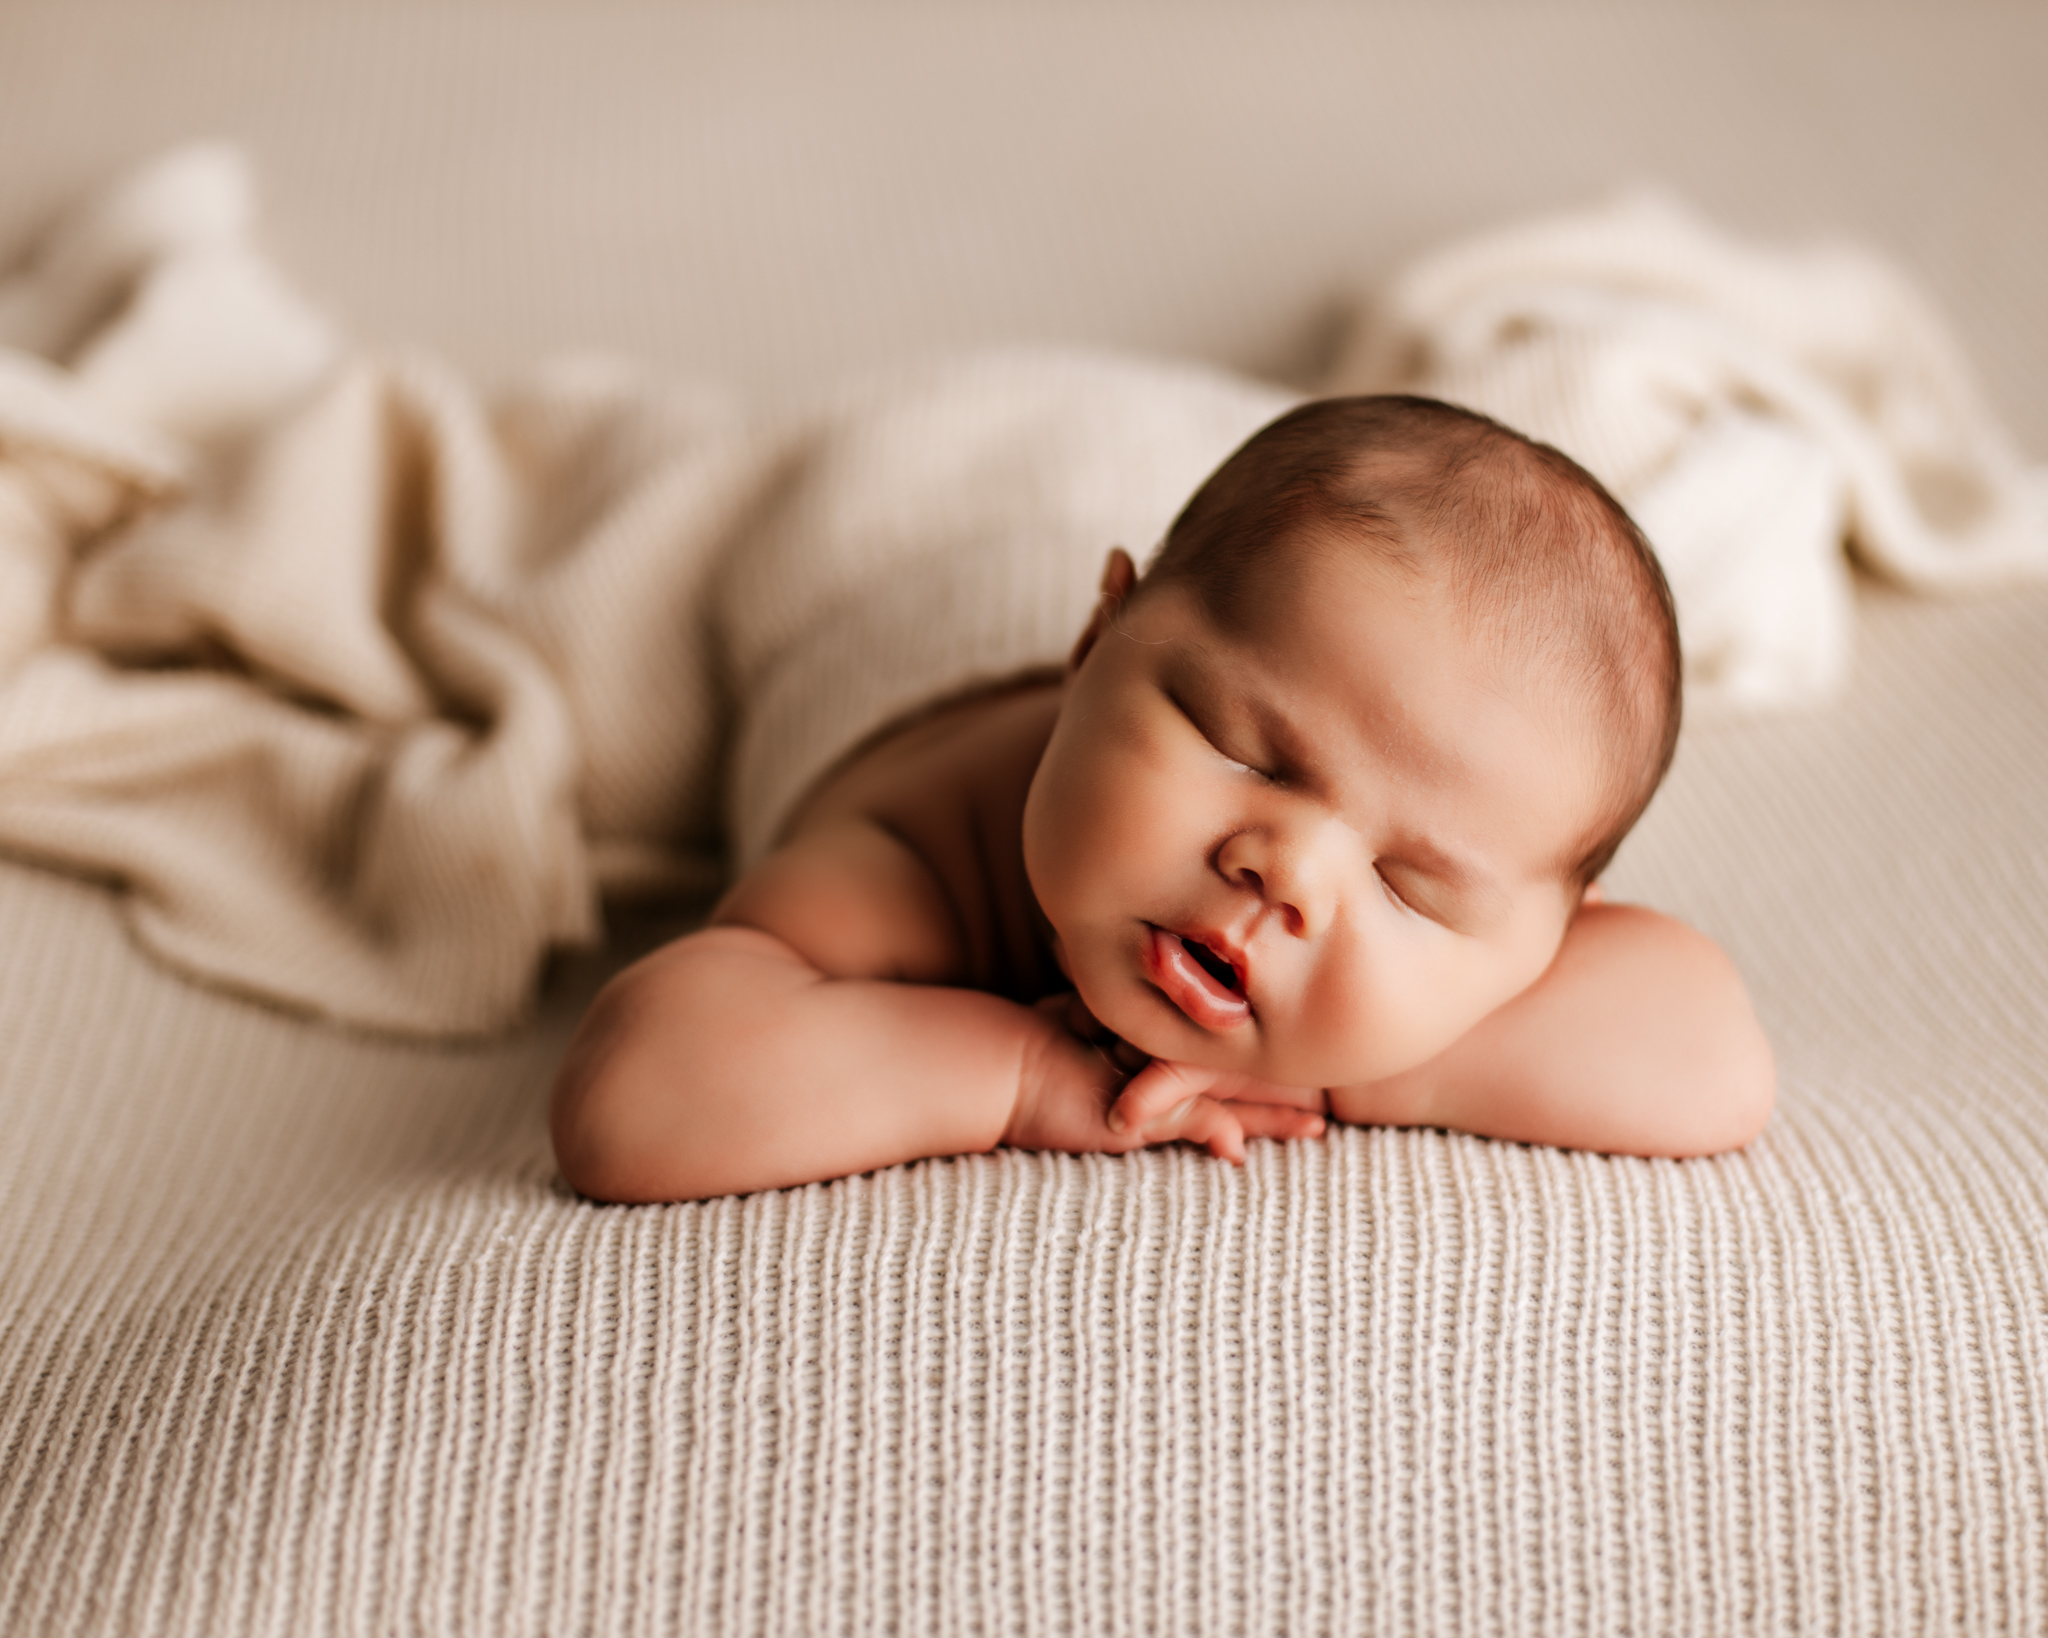 baby laying on cream backdrop with head on hands sleeping